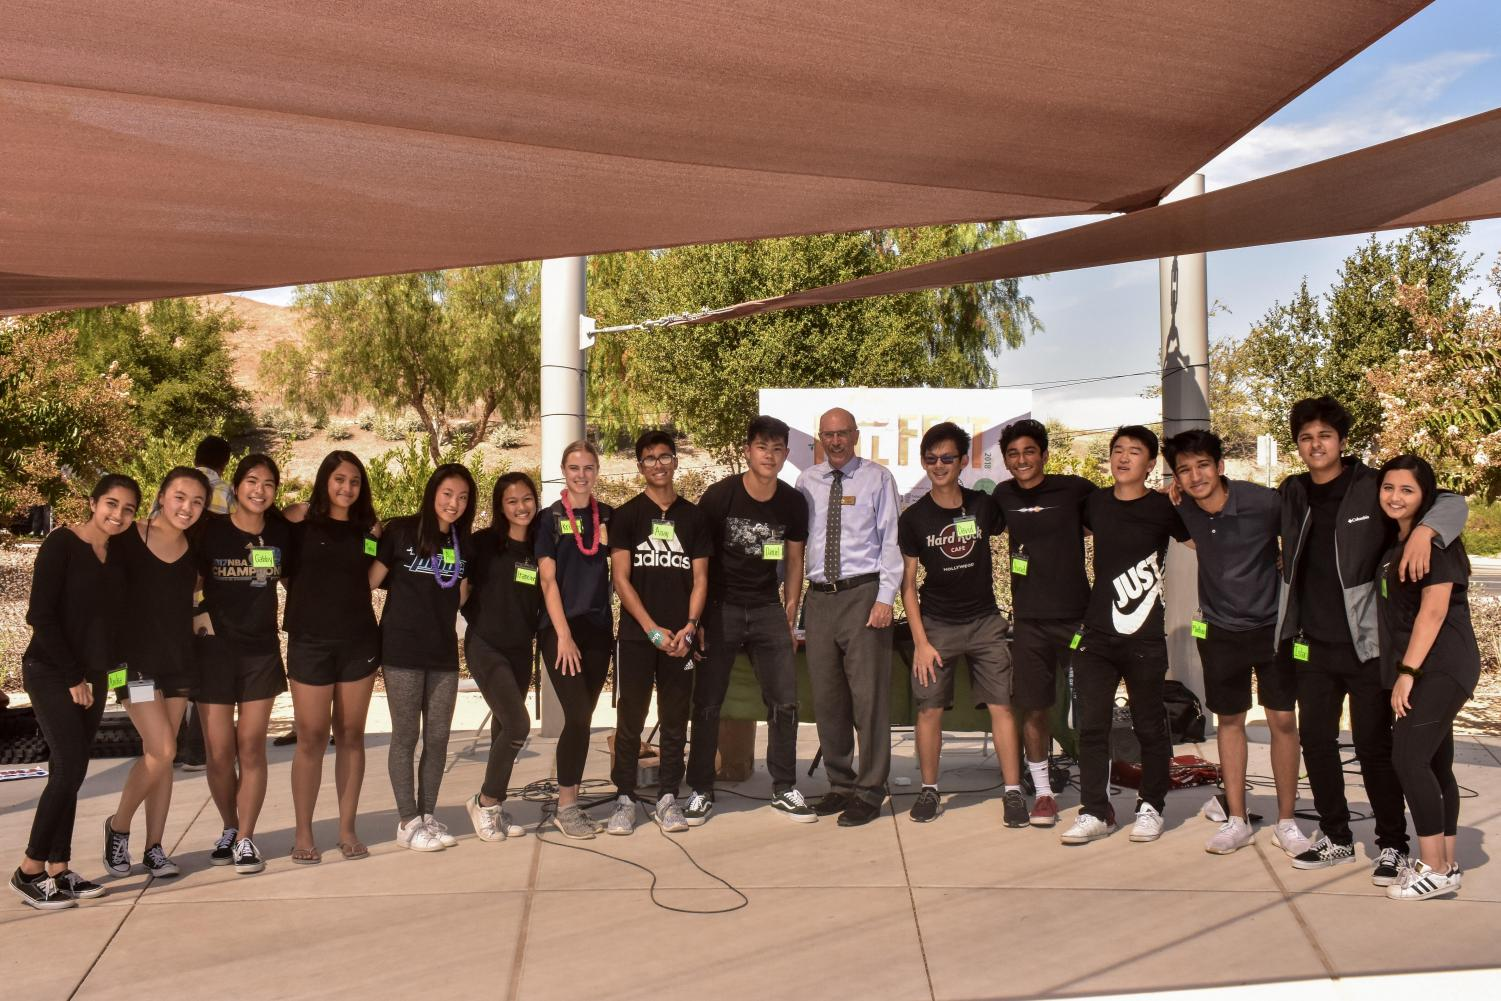 Dougherty Valley Kiva officers were visited on Sept. 22 at their Fall Festival by Mayor of San Ramon Bill Clarkson.